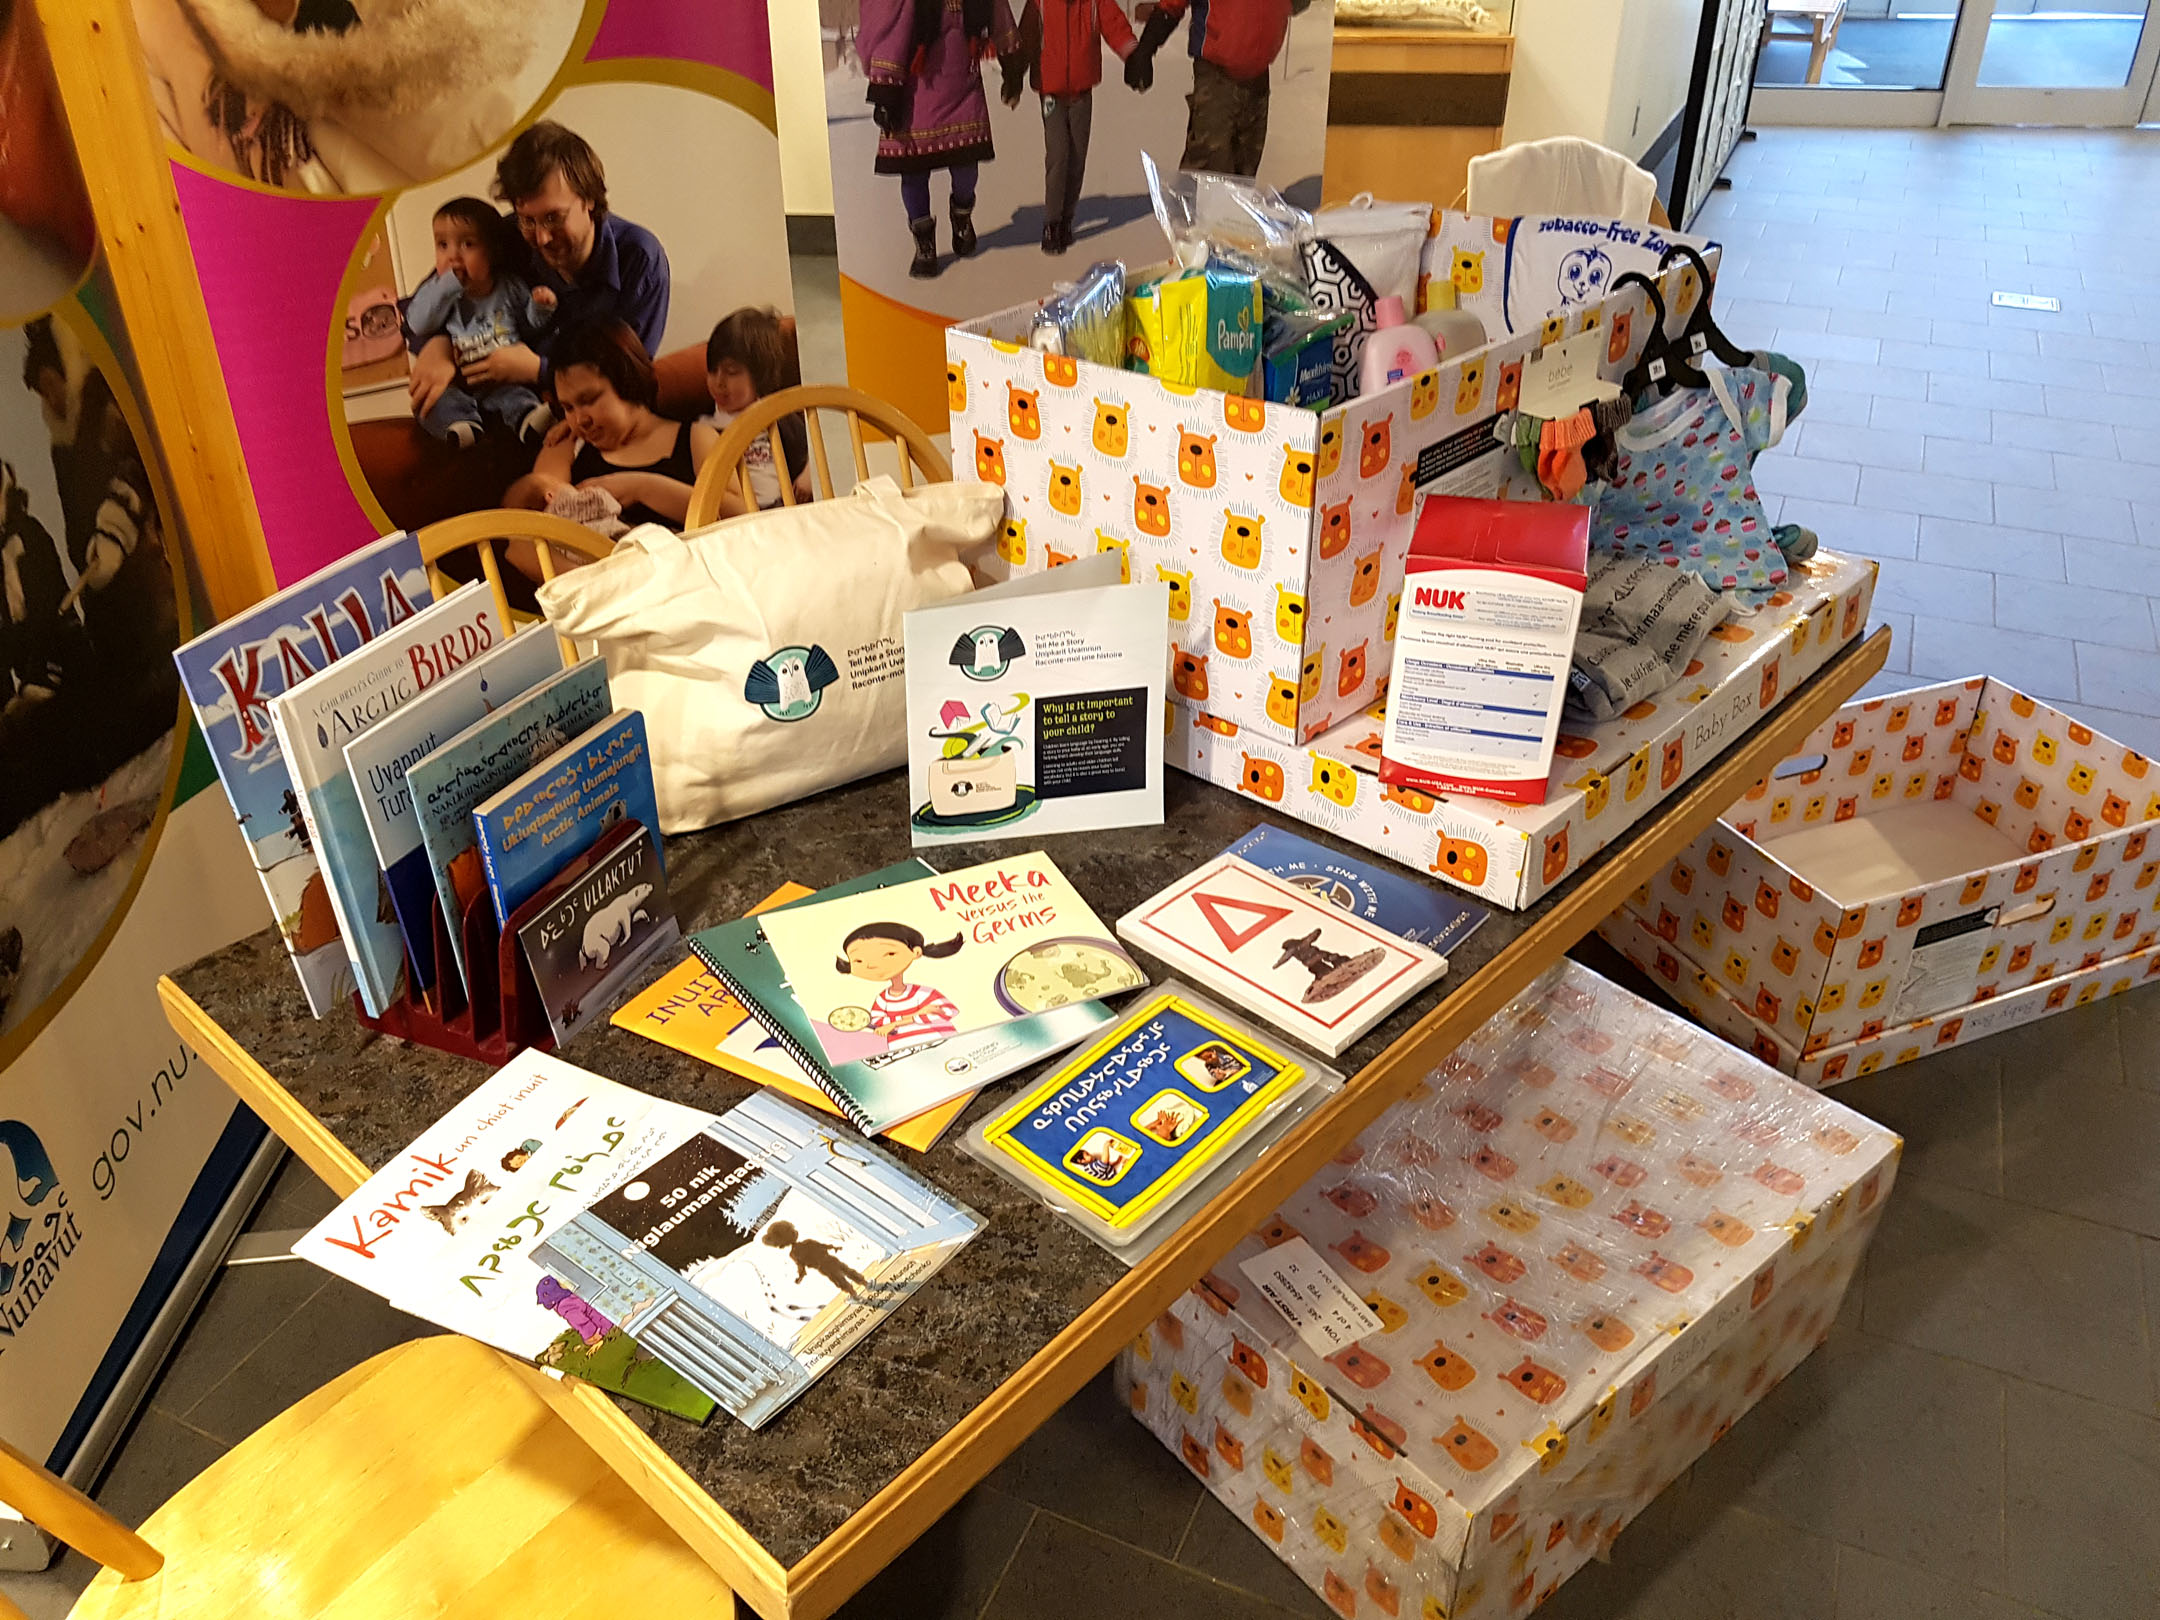 Nunavut will send Finnish-style baby box care packages to all newborns